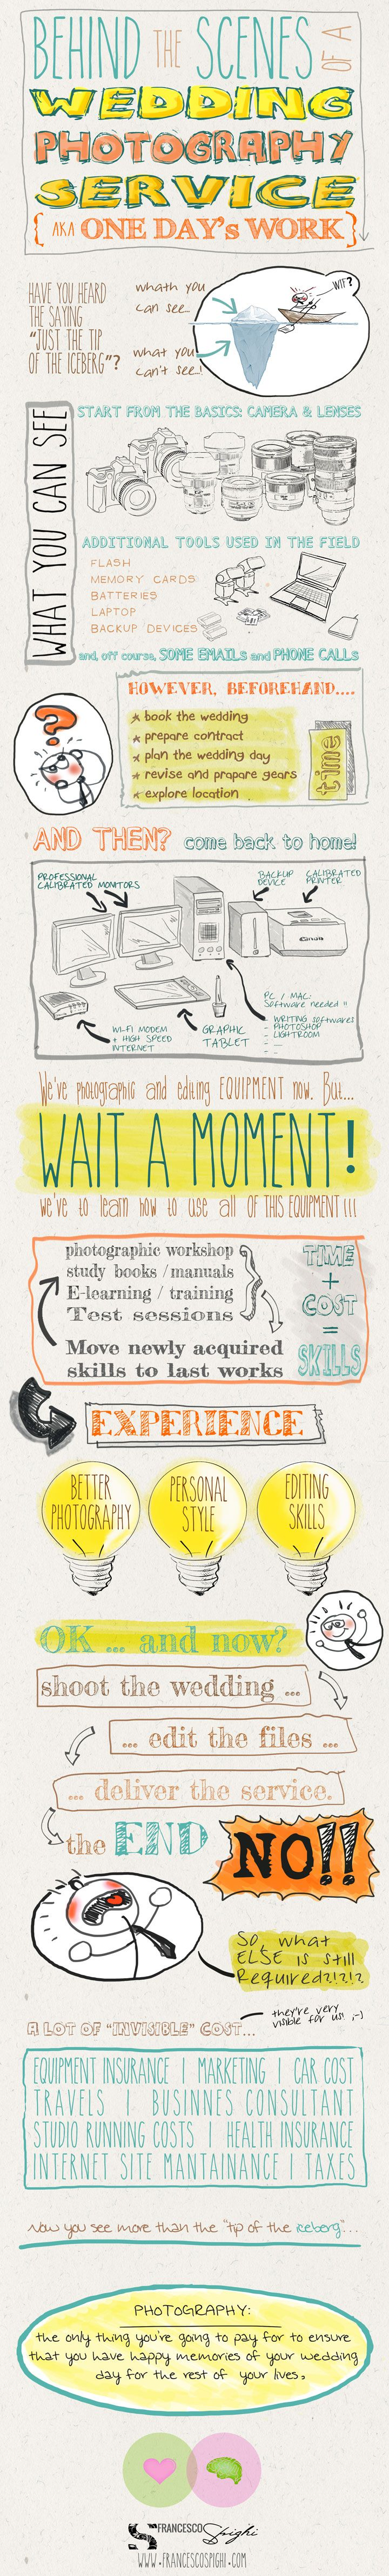 Wedding Photography Infographic: It's Not All Just 'In a Day's Work'